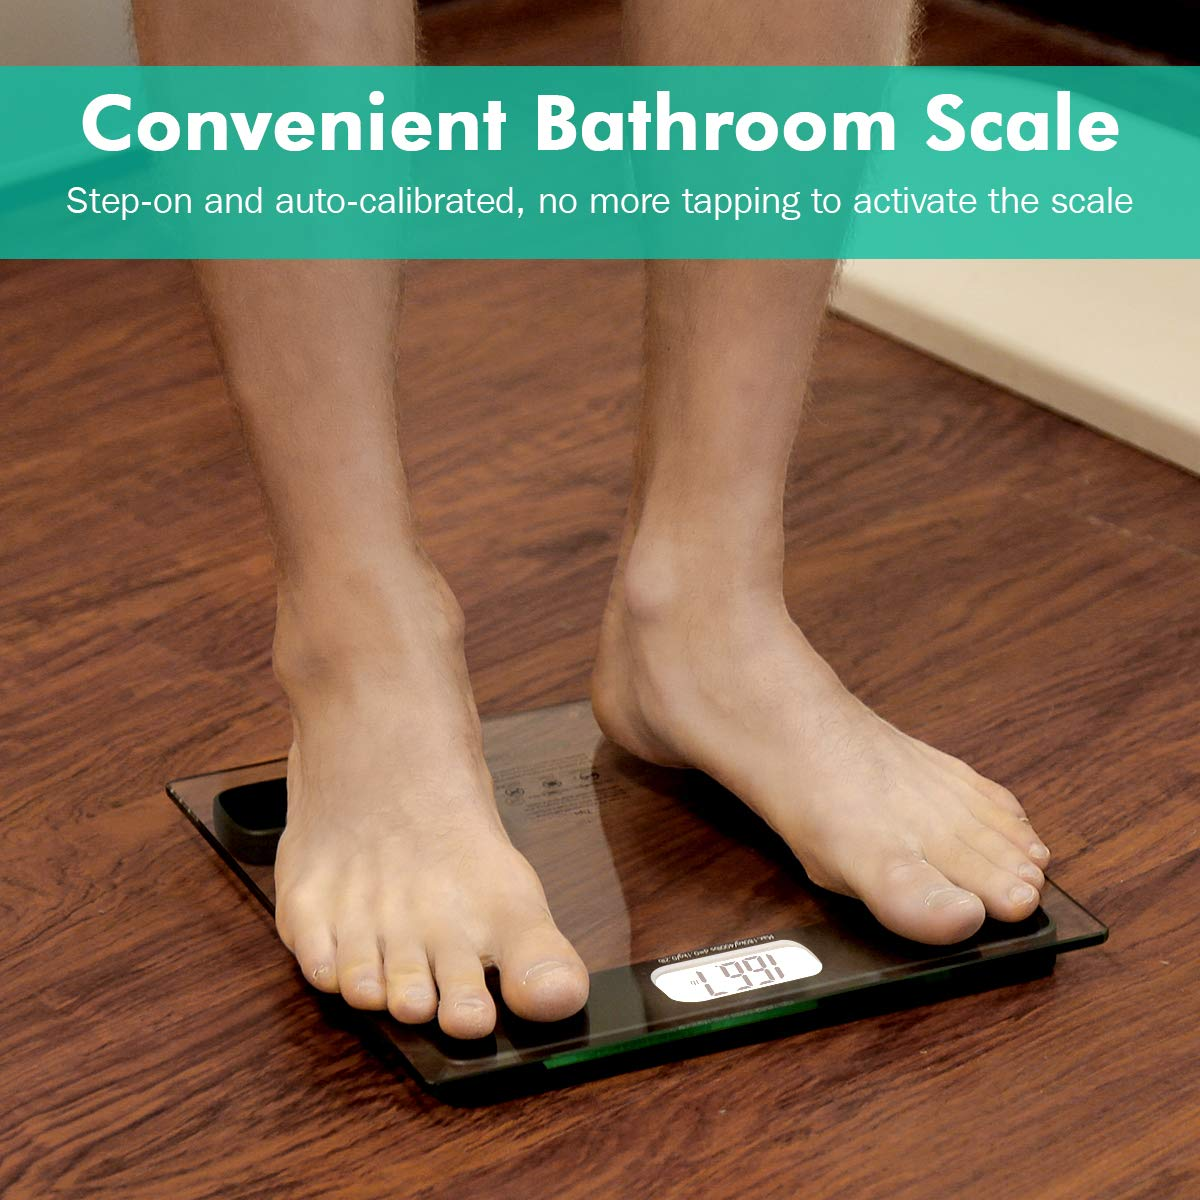 Beautural Precision Digital Body Weight Bathroom Scale with Lighted Display, Step-On Technology, 400 lb by Beautural (Image #7)